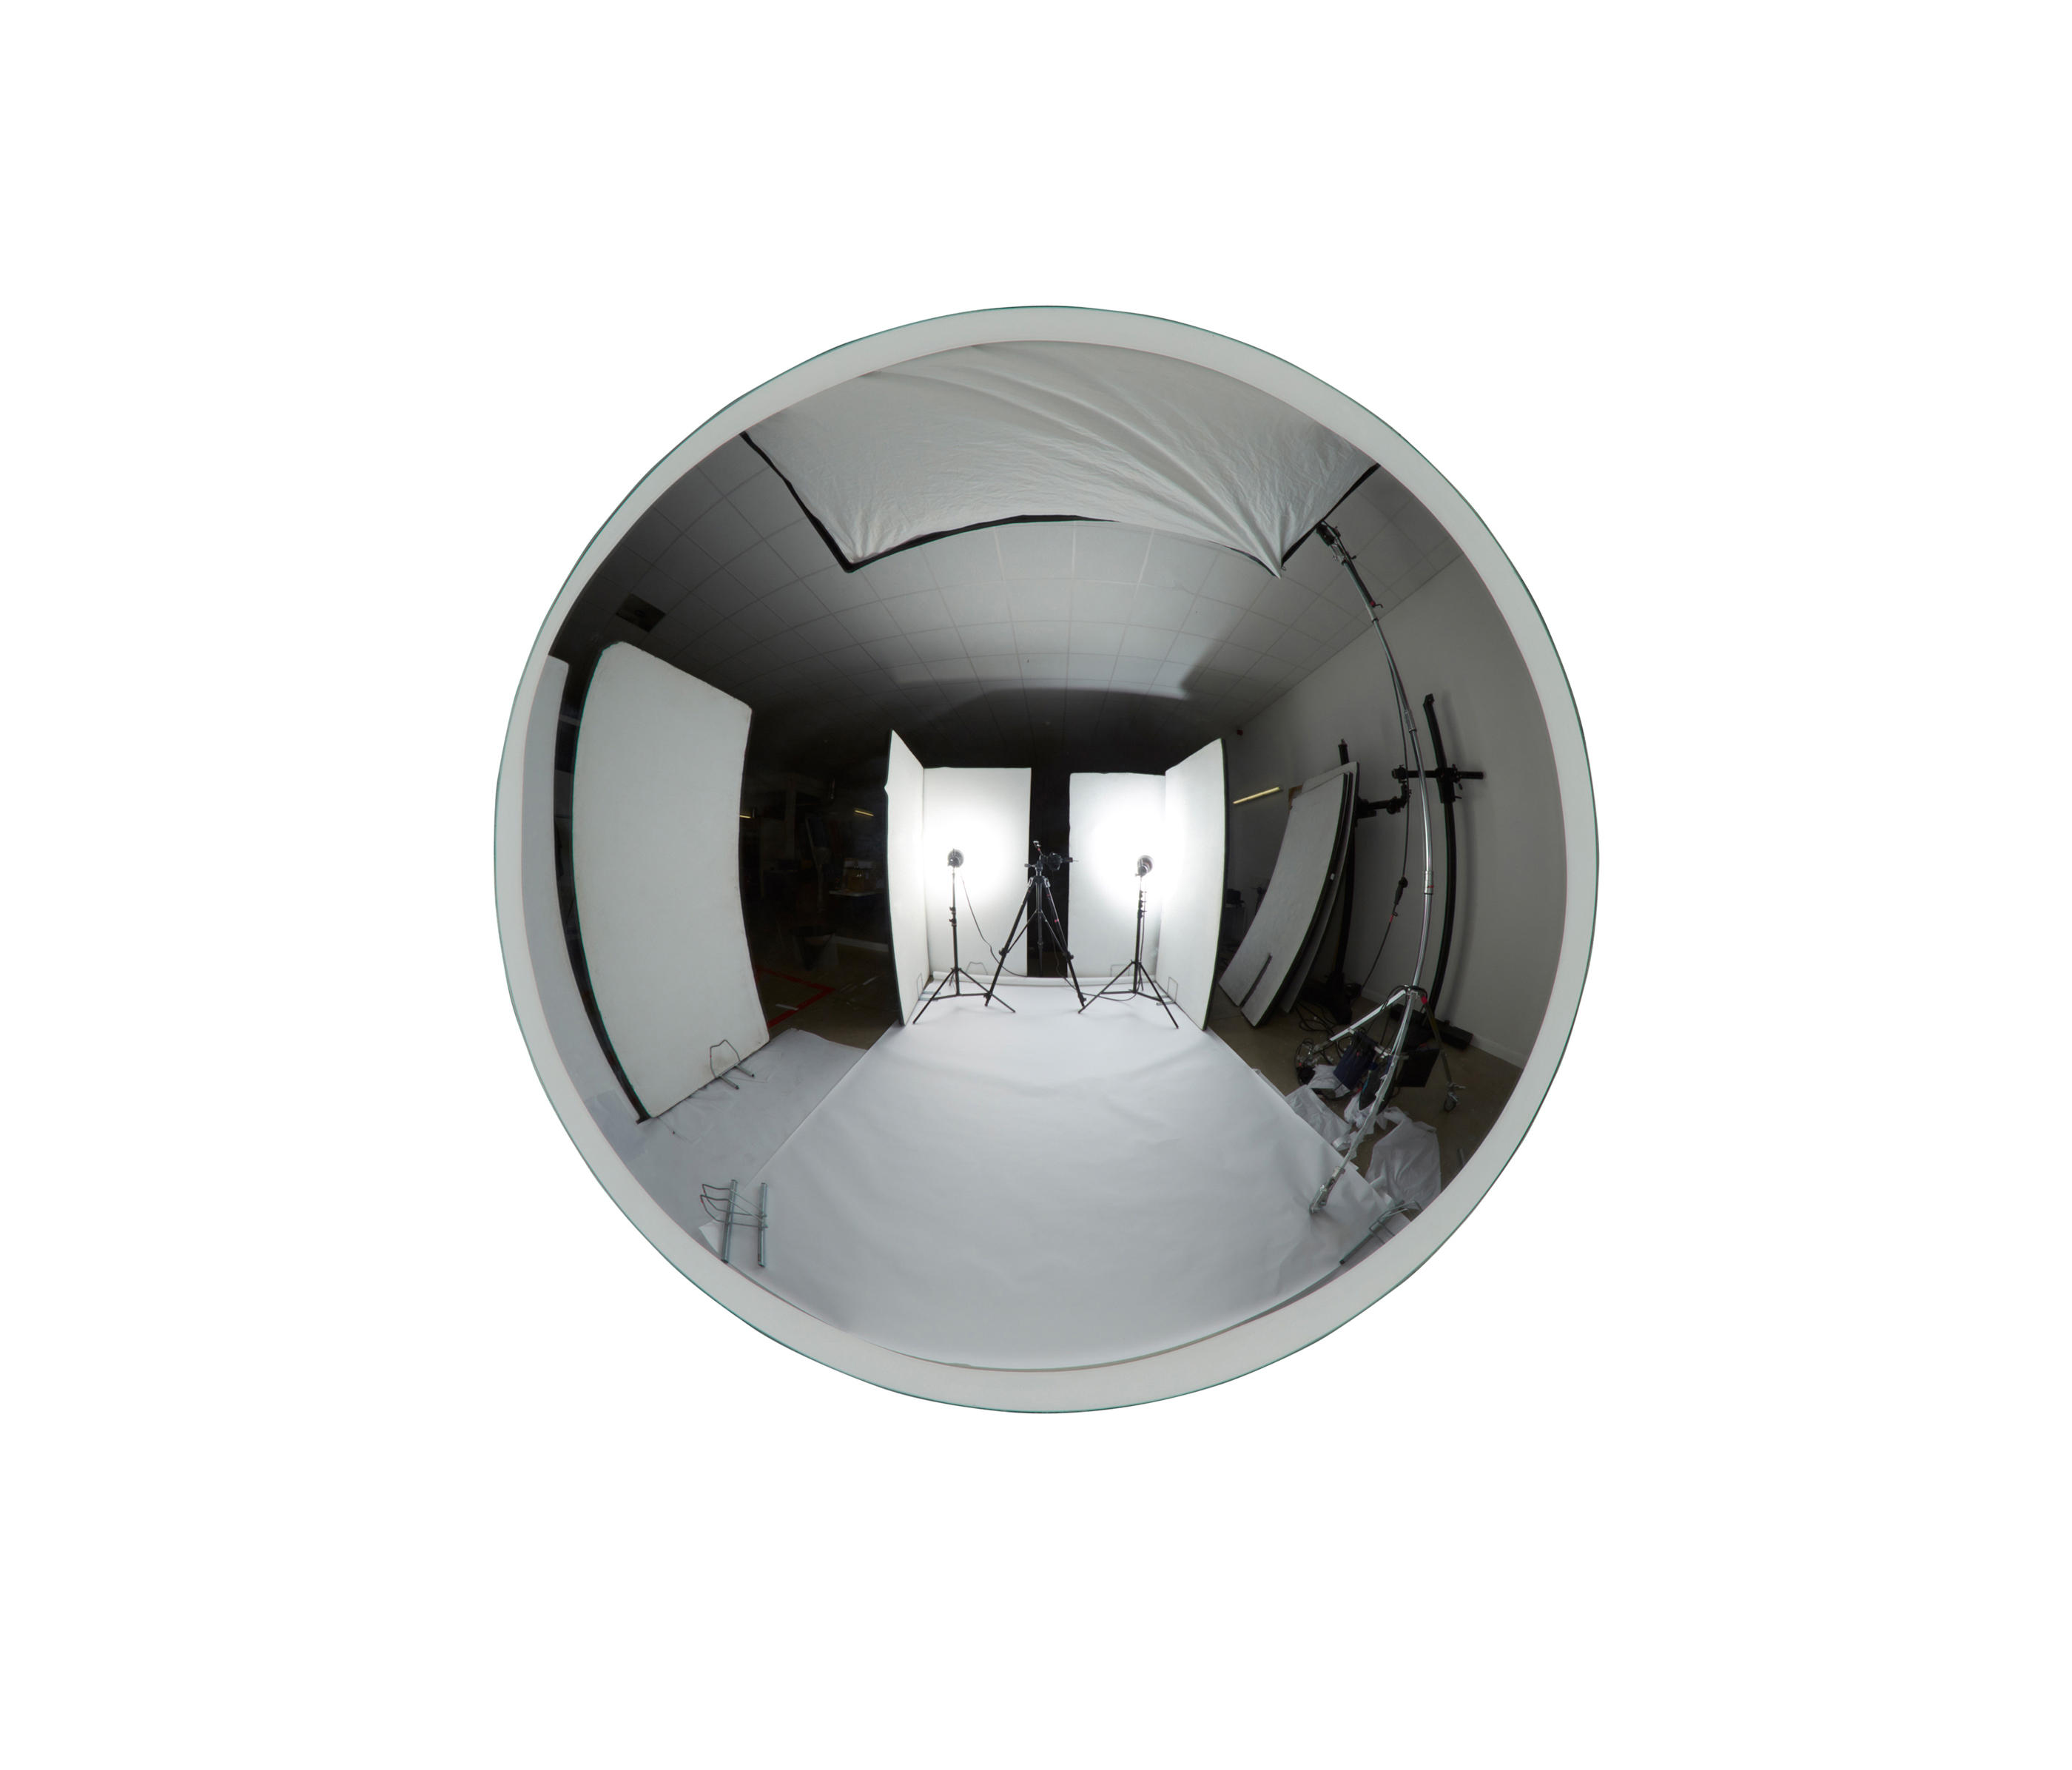 dome mirror mirrors from tom dixon architonic. Black Bedroom Furniture Sets. Home Design Ideas